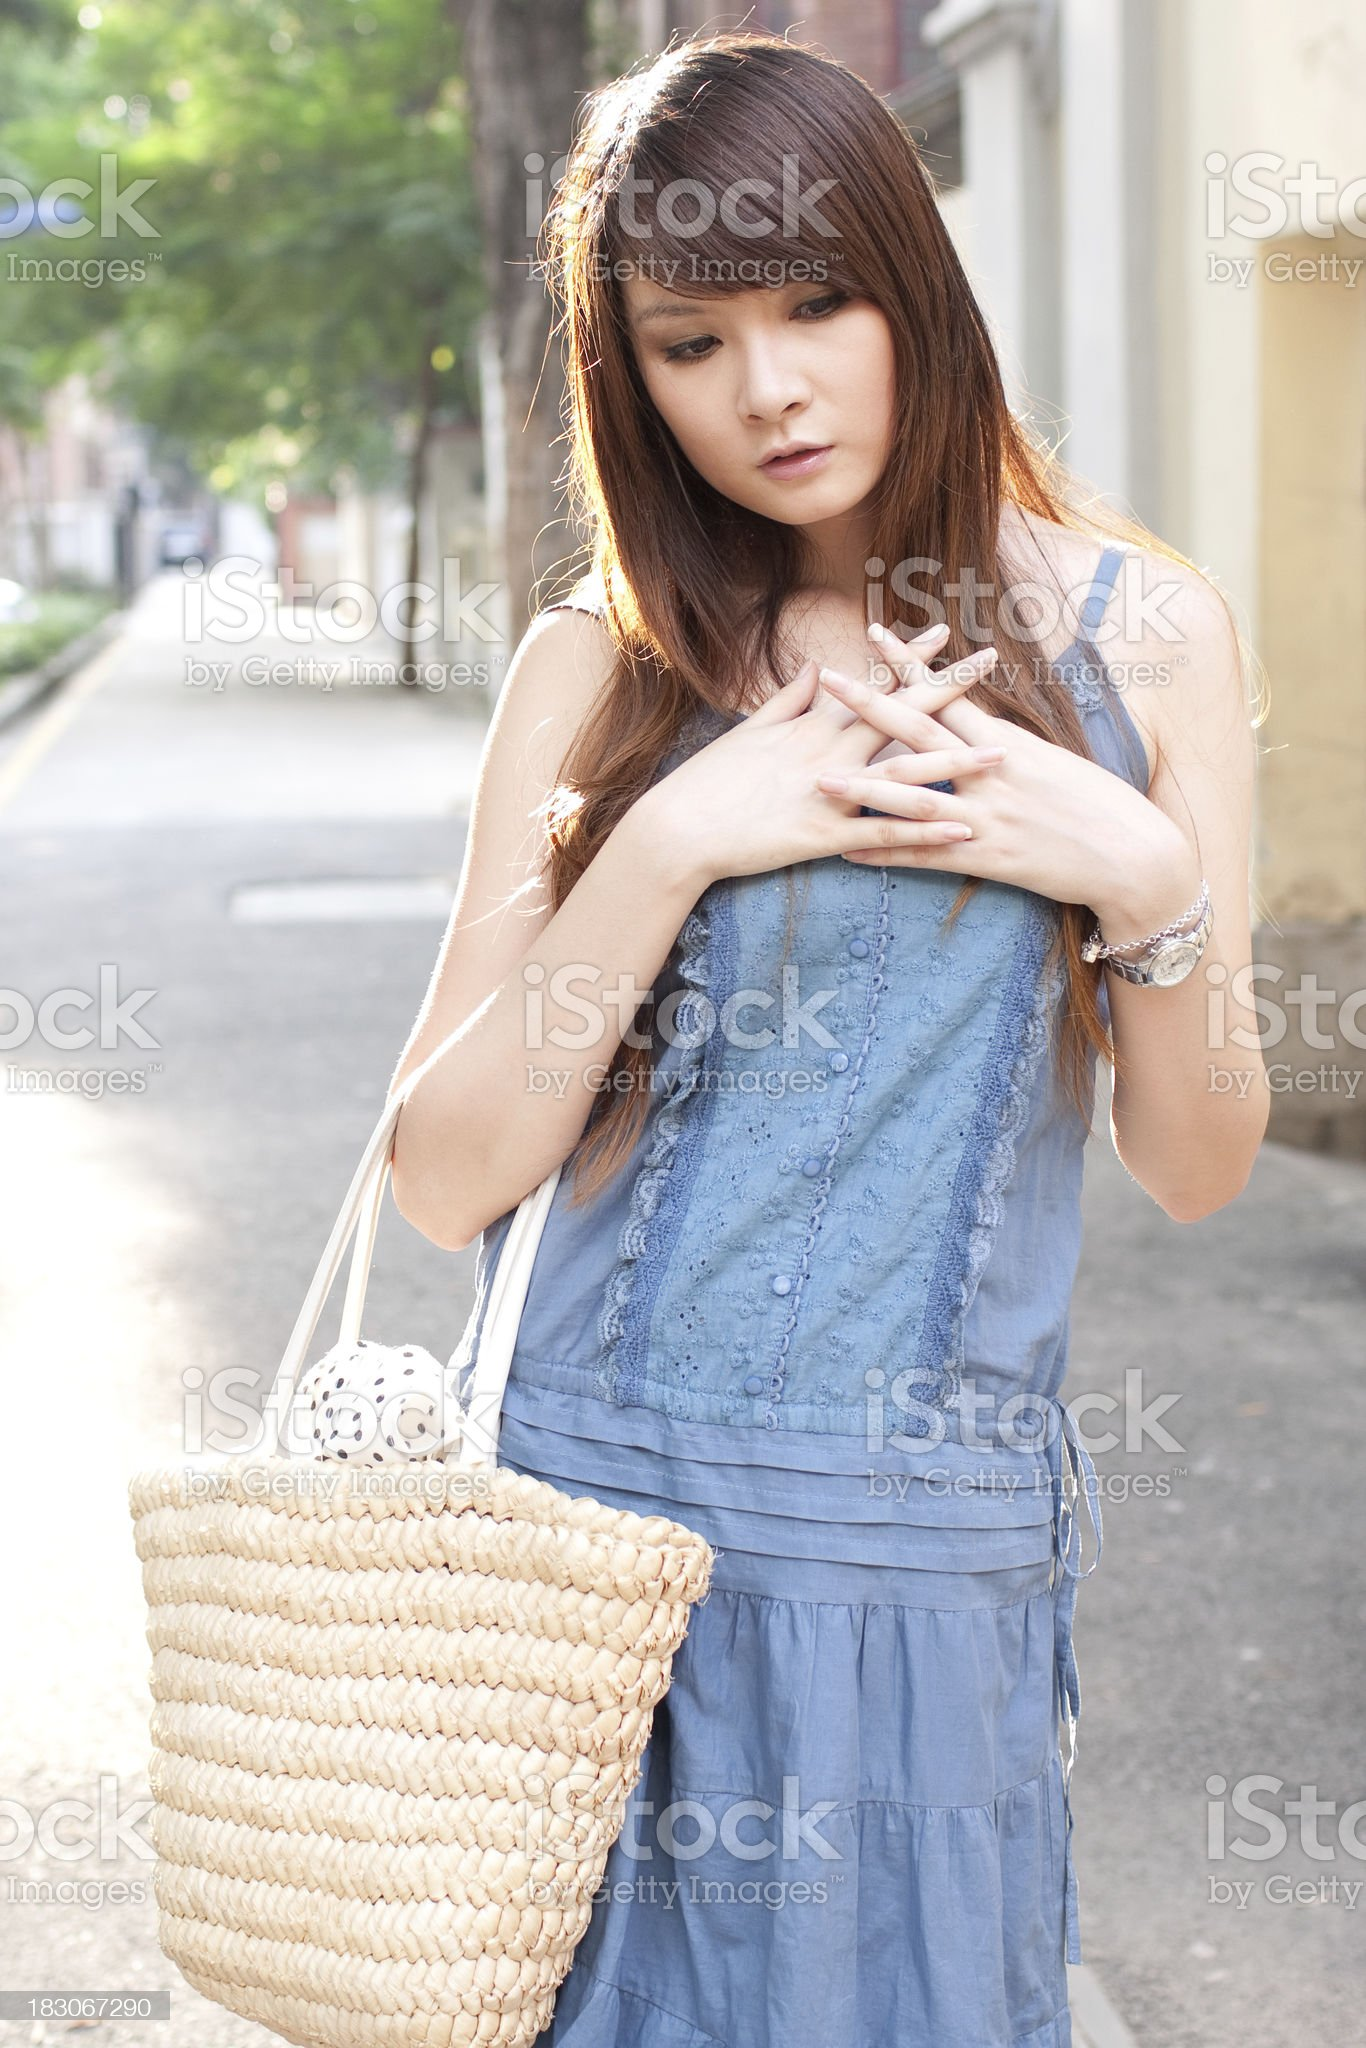 single asian young woman portrait royalty-free stock photo